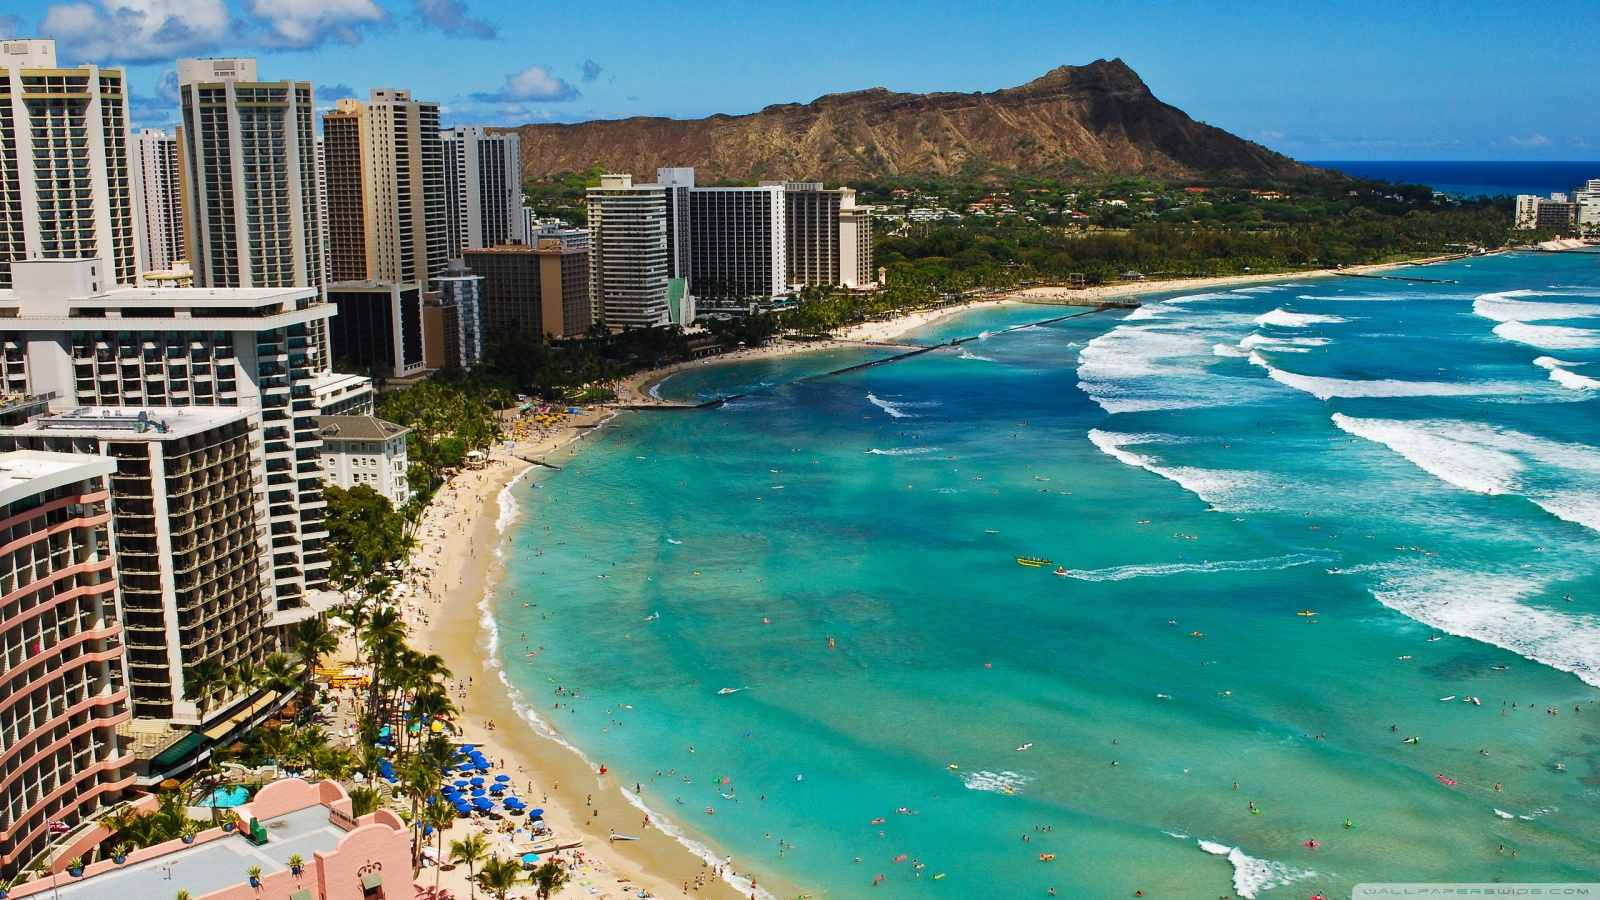 Waikiki Beach 4K HD Desktop Wallpaper for 4K Ultra HD TV Dual 1600x900